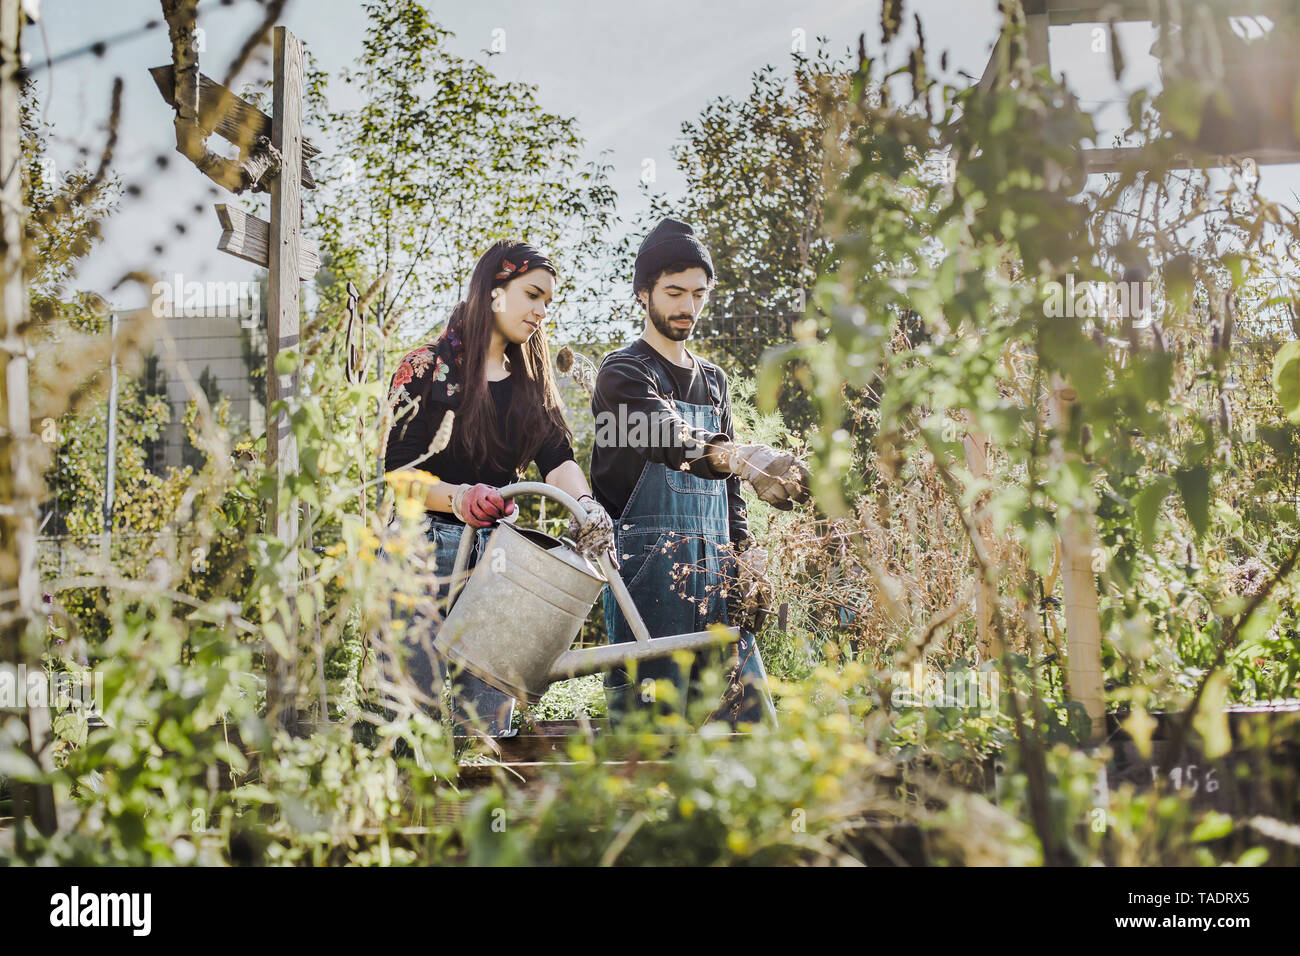 Couple gardening in urban garden together - Stock Image